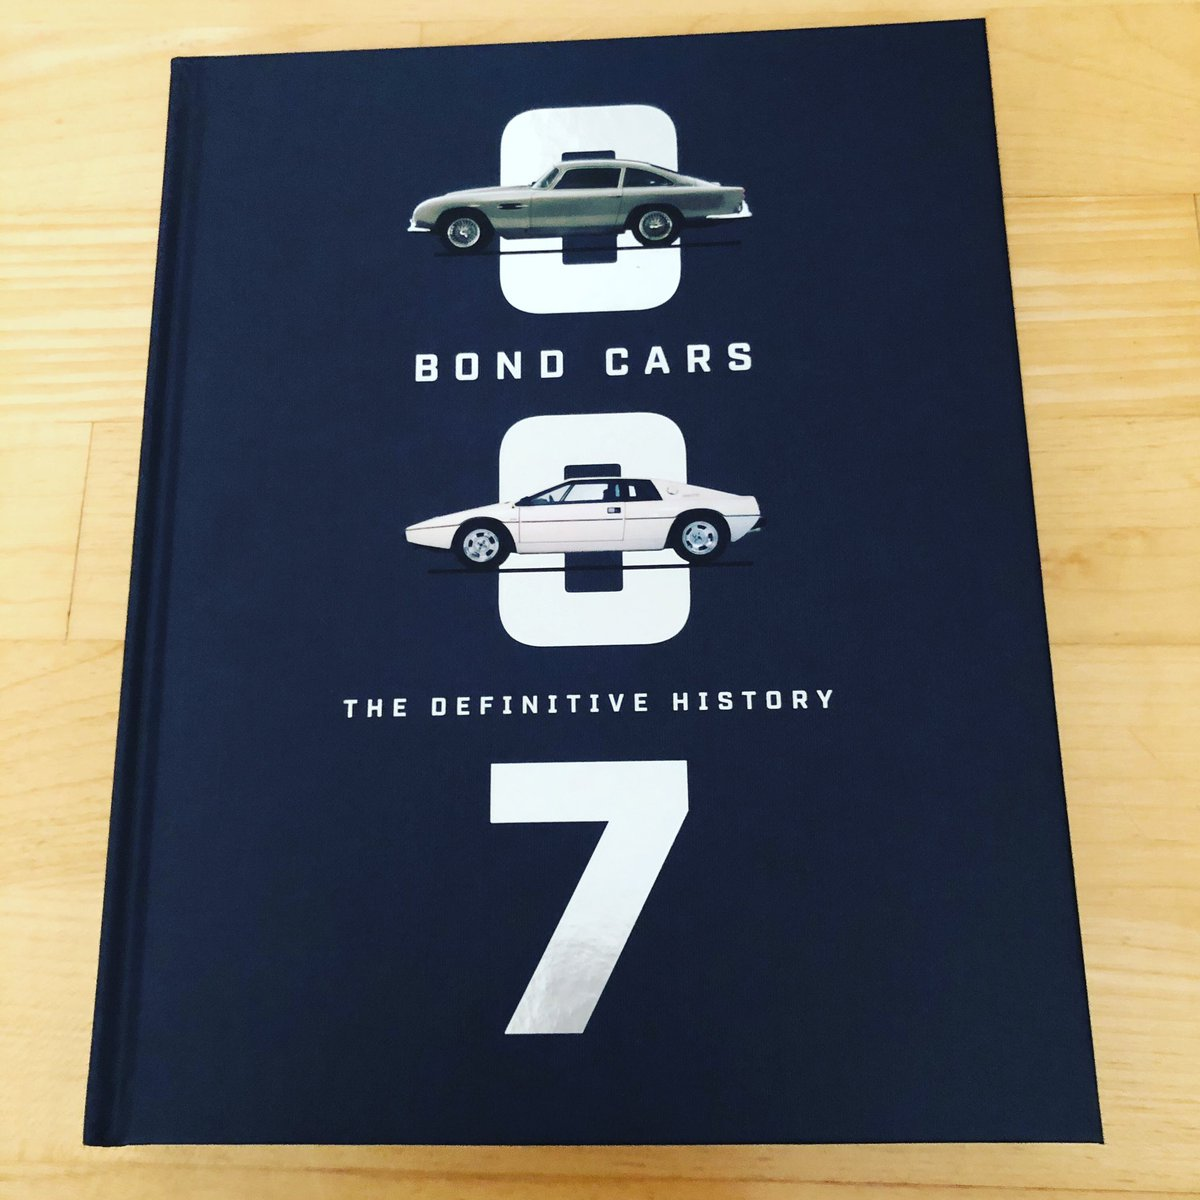 My new book, published on October 29th. @007 @NoTimetoDie2020 Yes, it's an official Bond book, replete with rarely seen archive images. Words aren't bad, either... Available to pre-order from you know where now, and other bricks and mortar booksellers soon https://t.co/jY6V2GPu9S